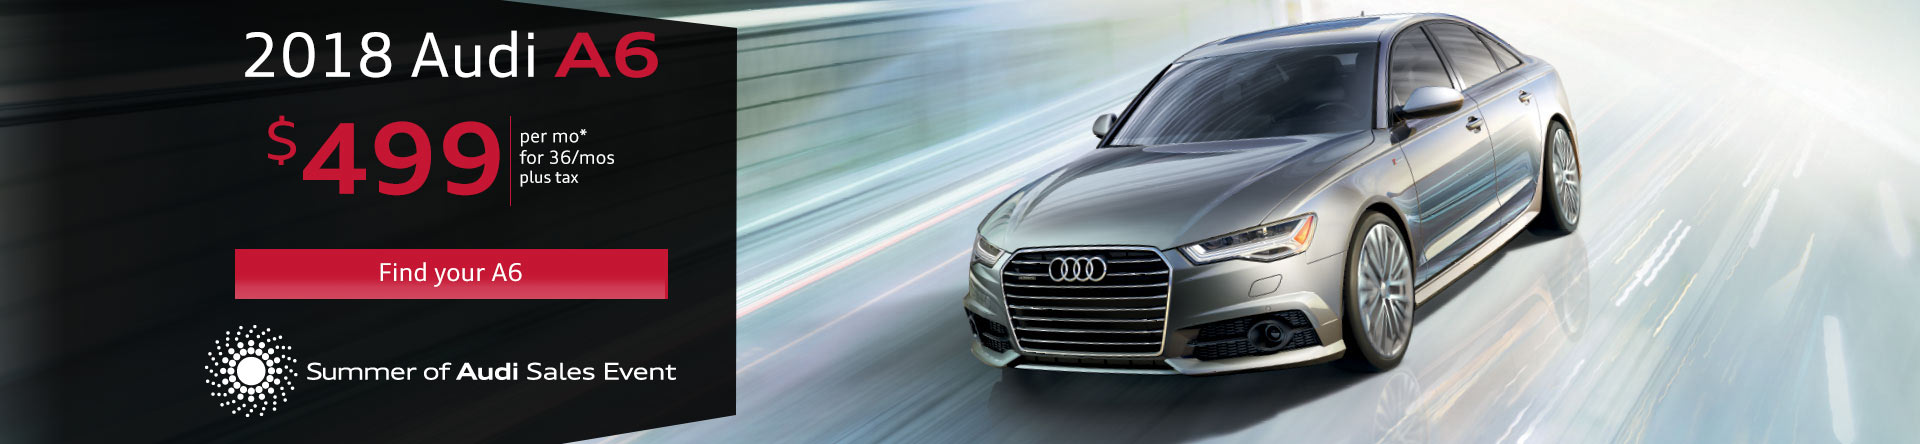 Audi A6 Lease Specials Audi Brooklyn Brooklyn Ny 11220